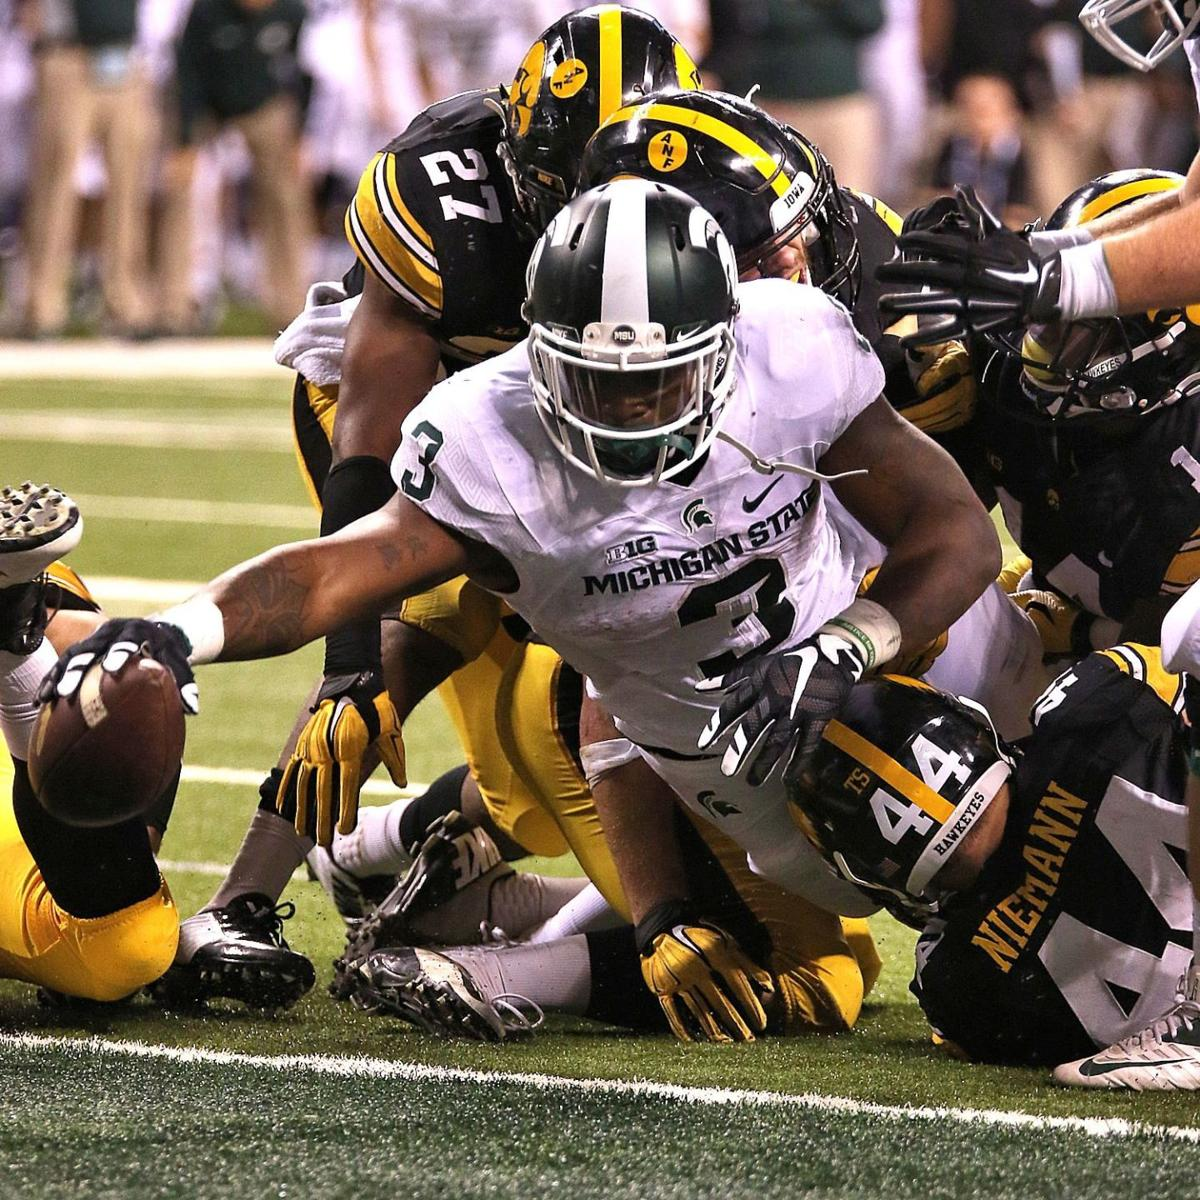 Slideshow: Spartans crowned again